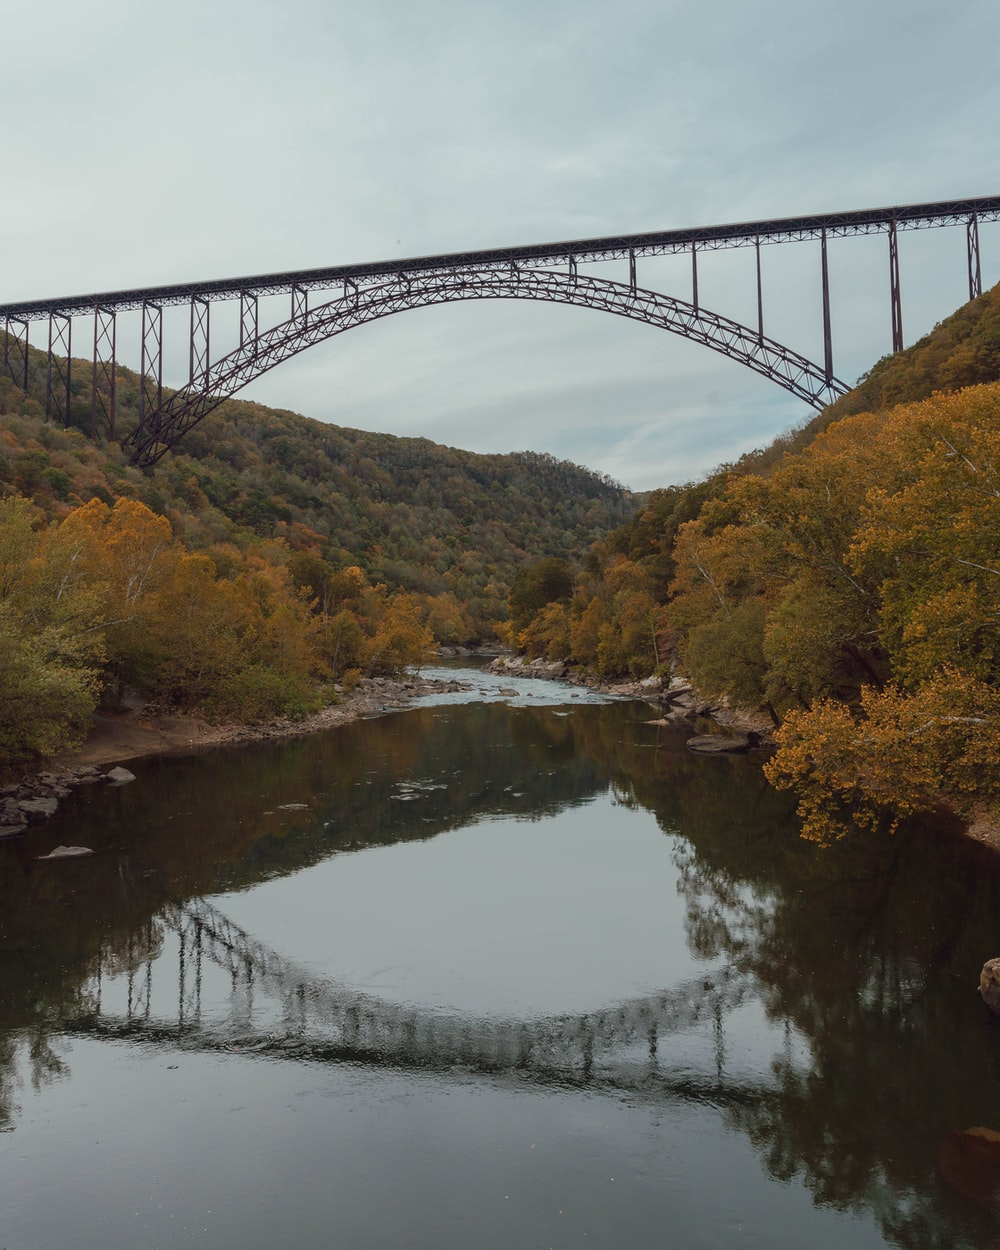 New River Gorge Bridge Arch bridge in Victor, Fayette County, West Virginia